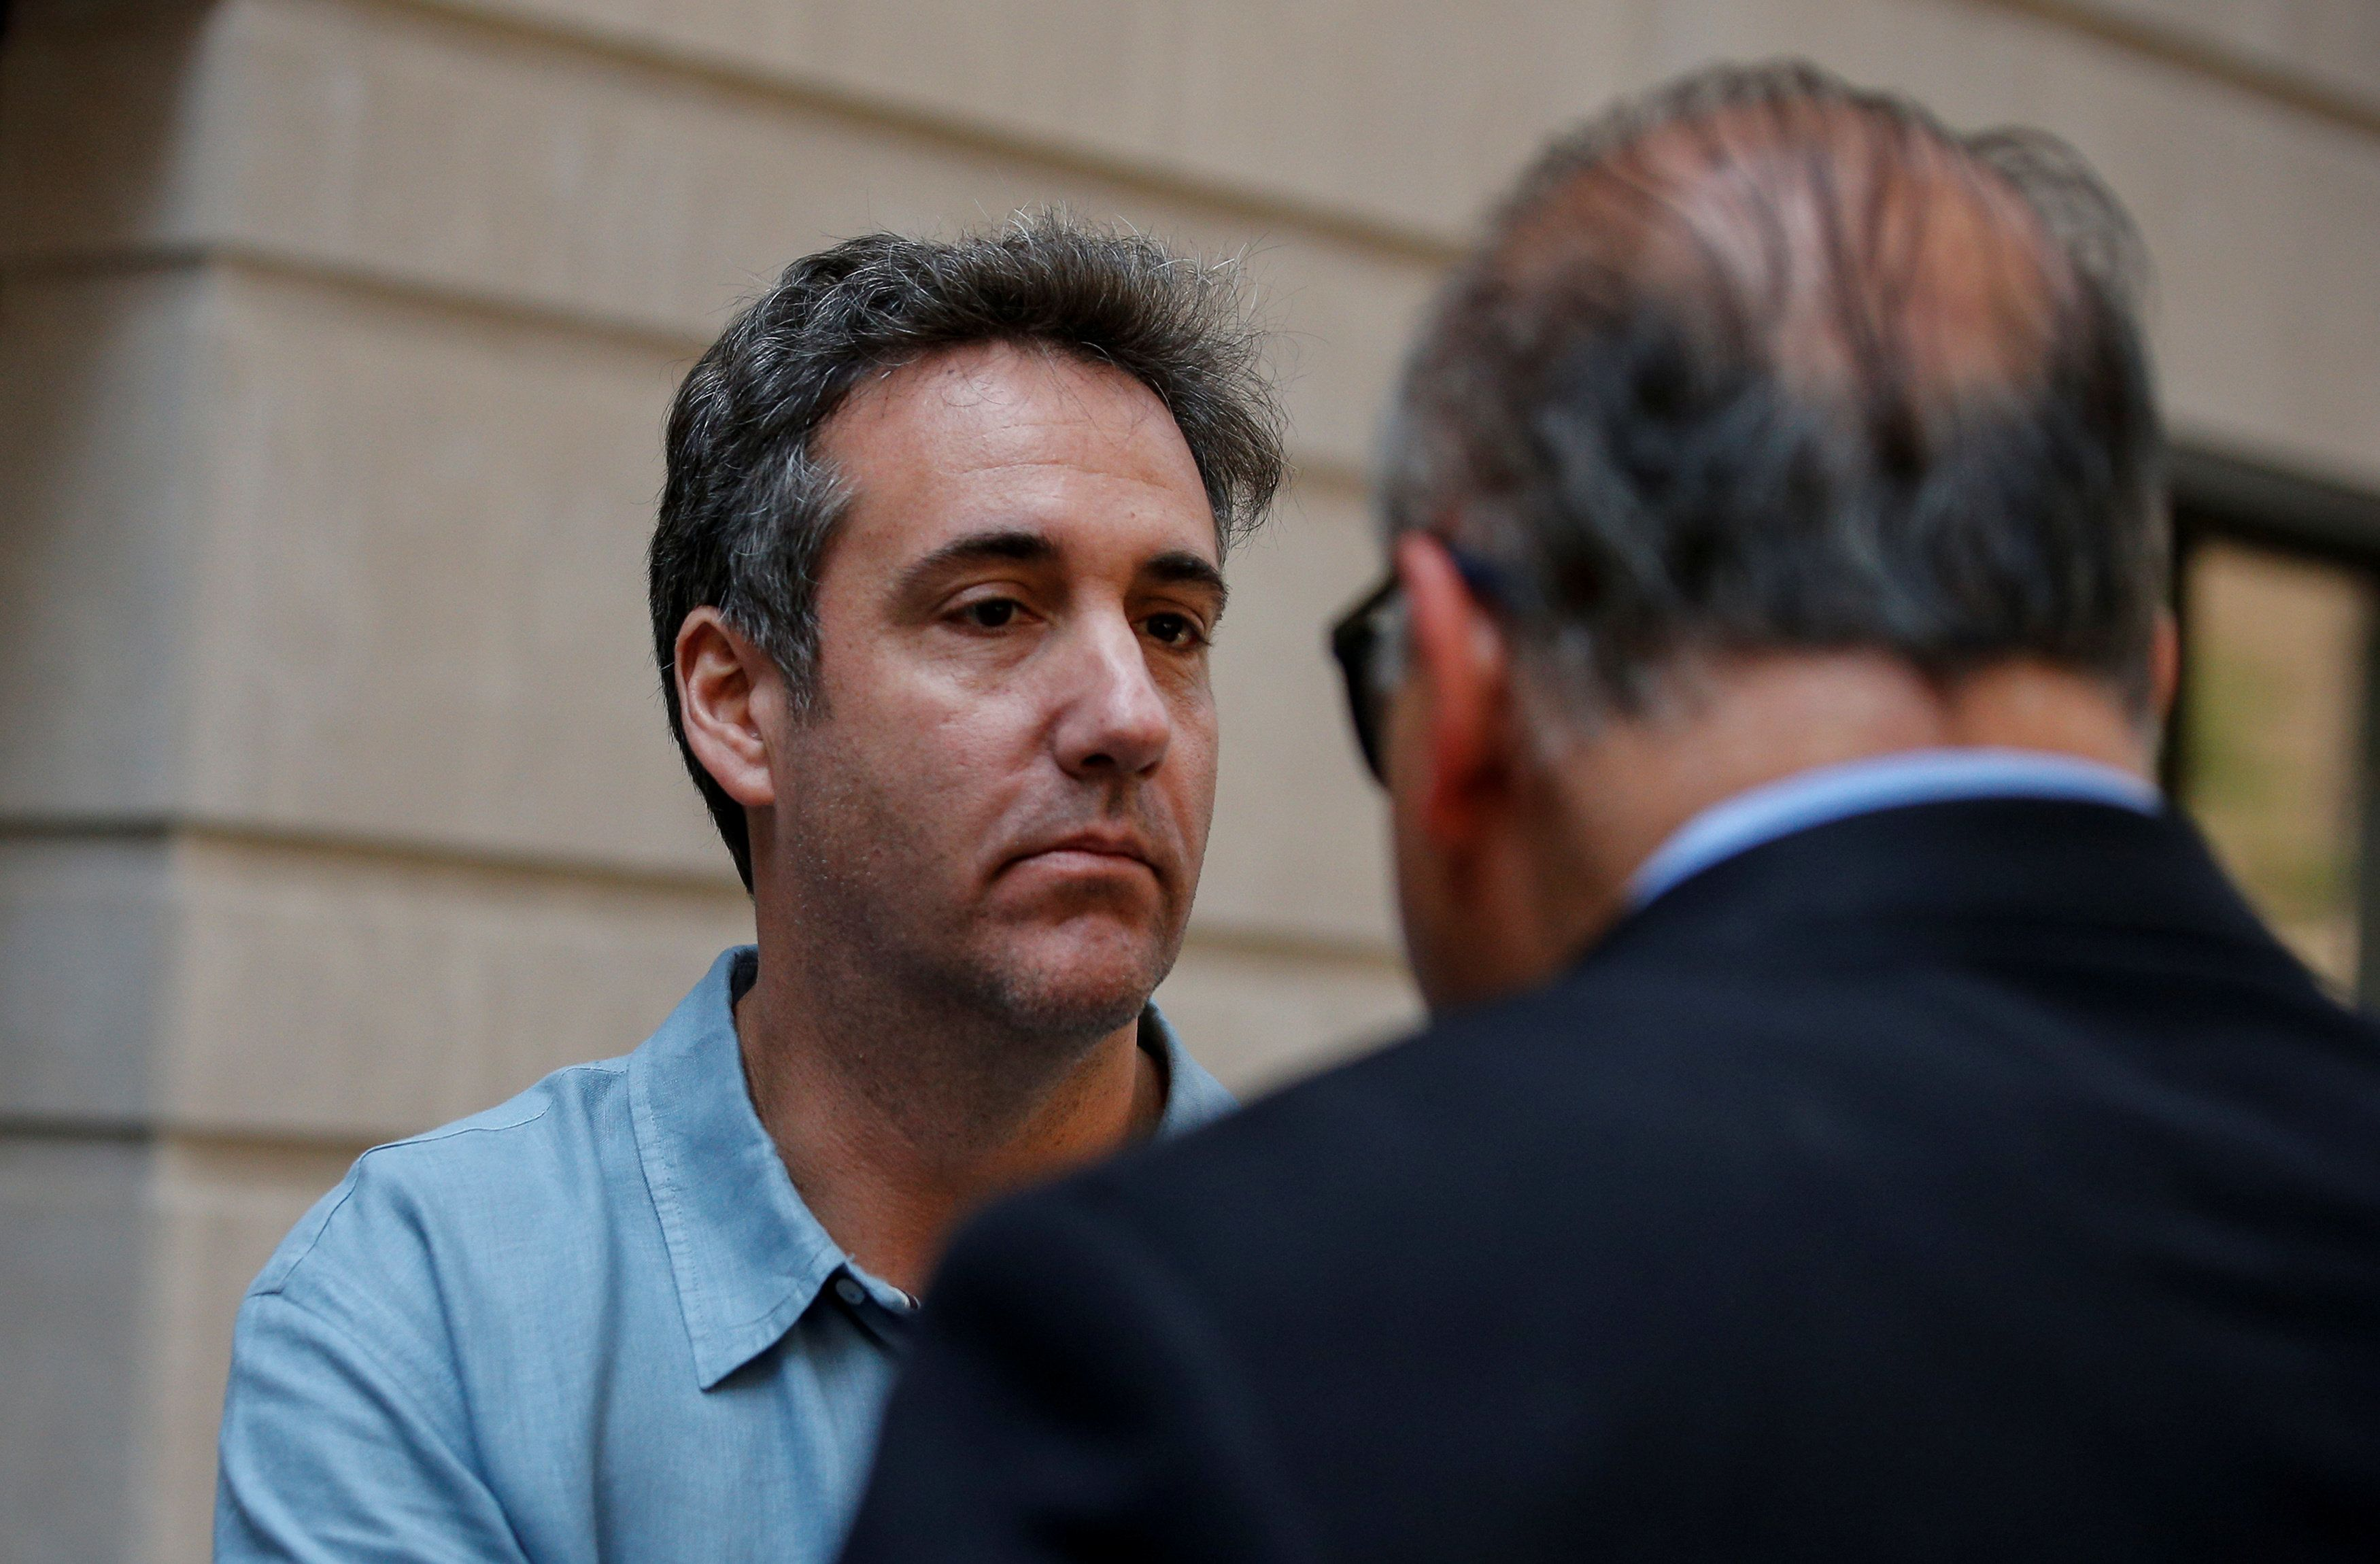 Cohen Doubts Trump Will Pardon Him